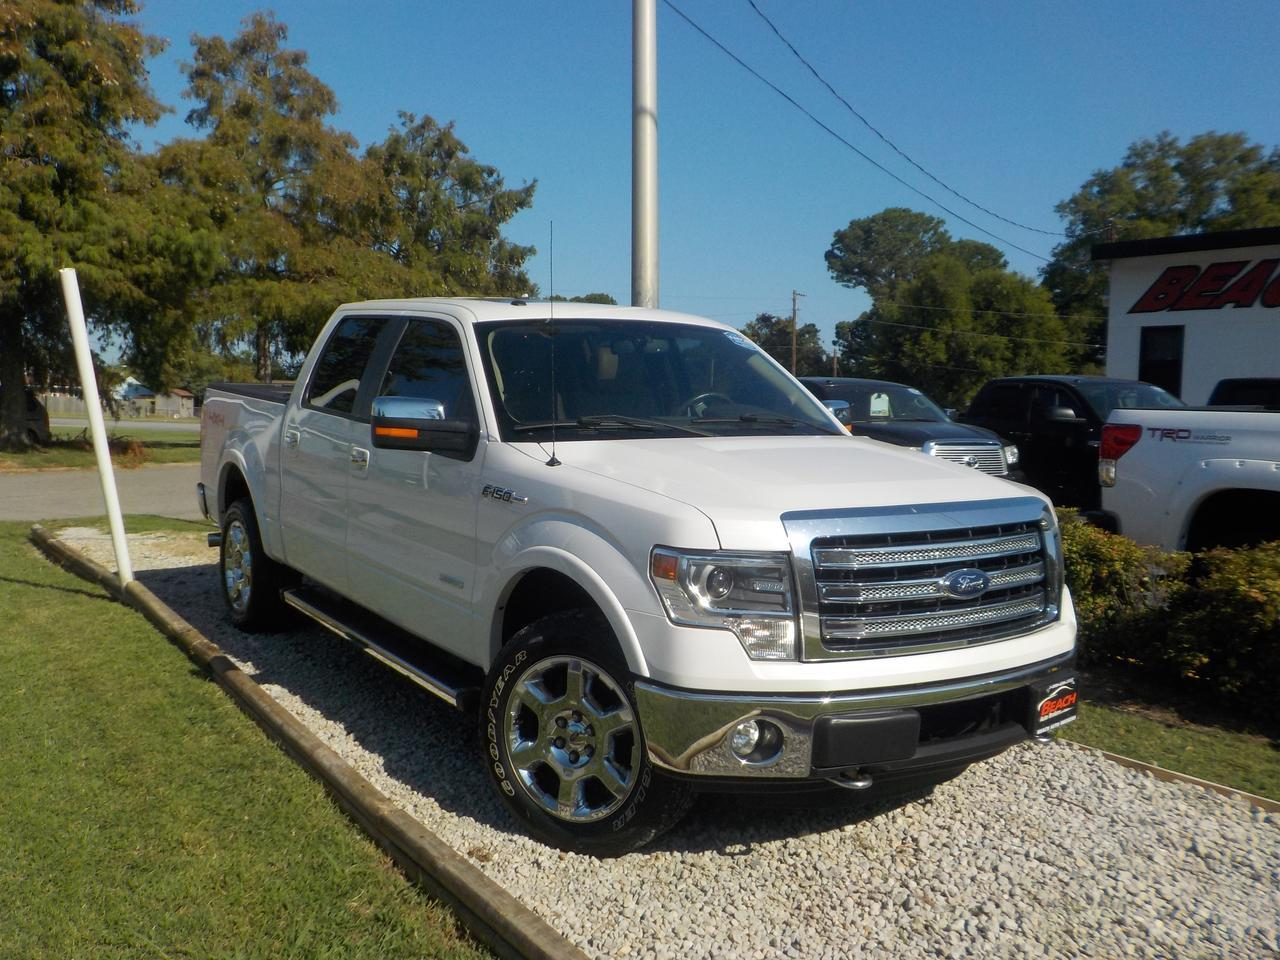 2013 FORD F-150 LARIAT SUPERCREW 4X4, WARRANTY, LEATHER, SUNROOF, REMOTE START, NAV, BLUETOOTH, HEATED/COOLED SEATS! Norfolk VA